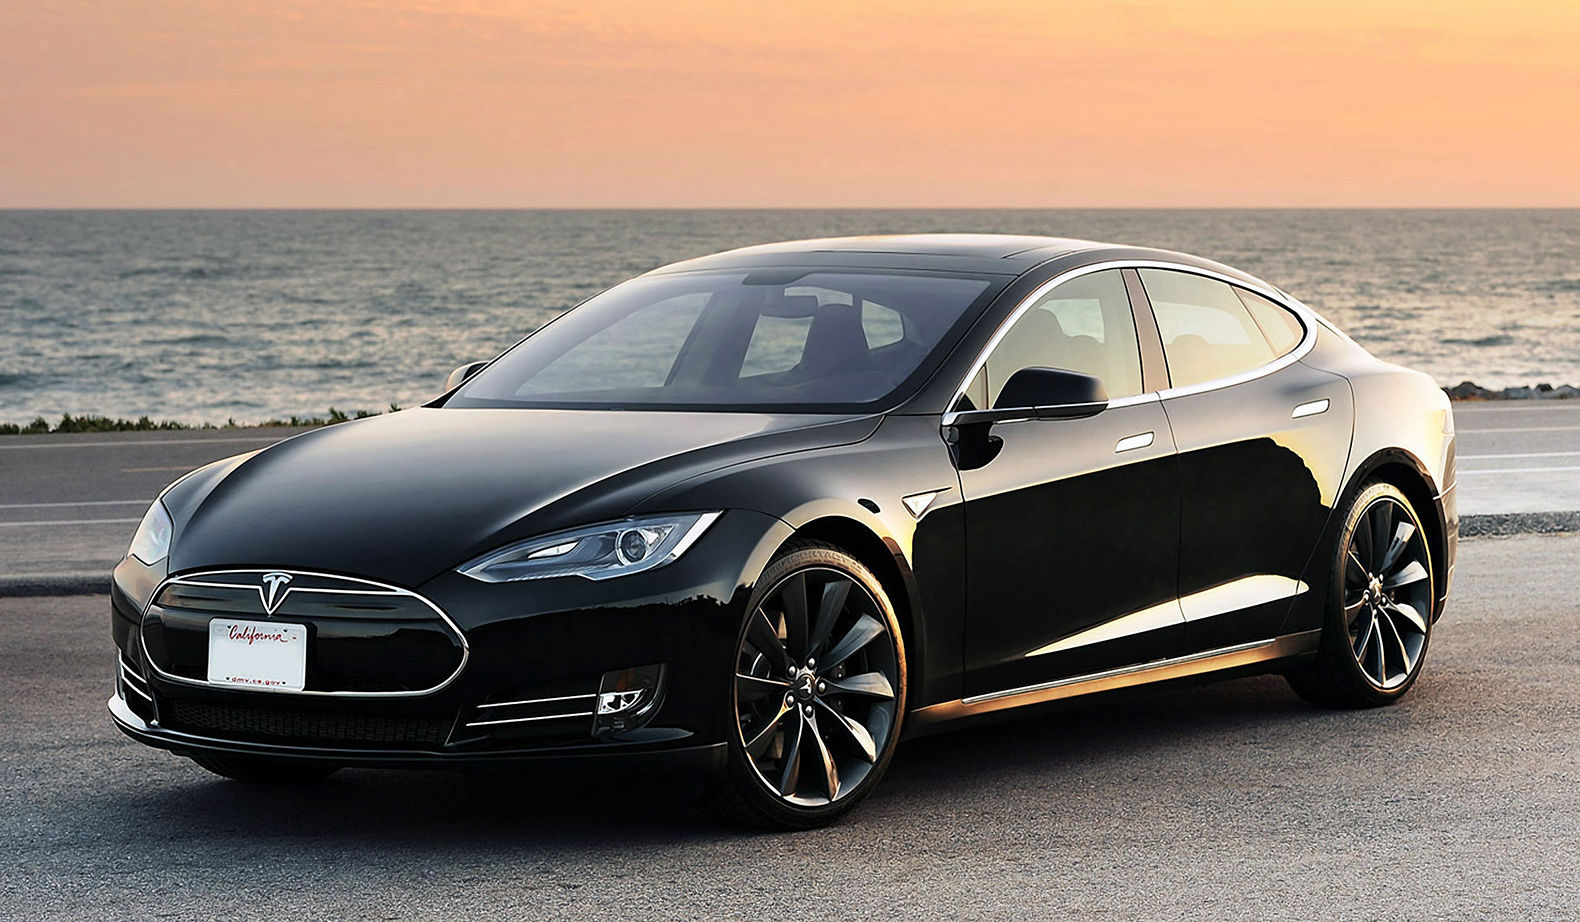 Singapore Tesla Owner Sled With 15 000 Fine For Carbon Emissions